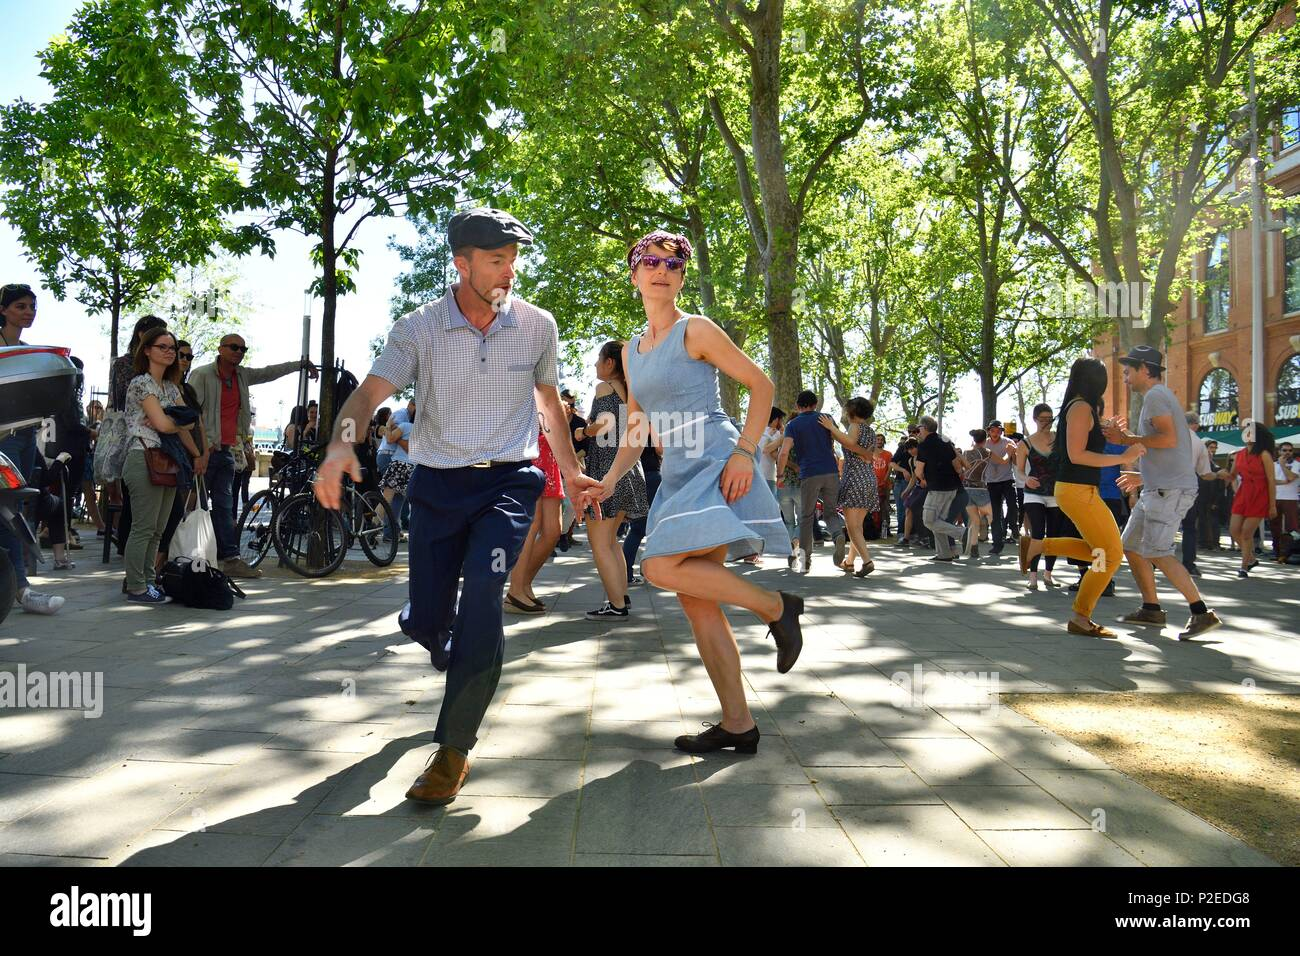 France, Haute Garonne, Toulouse, Garonne banks, Sunday afternoon on place St-Pierre, dance - Stock Image